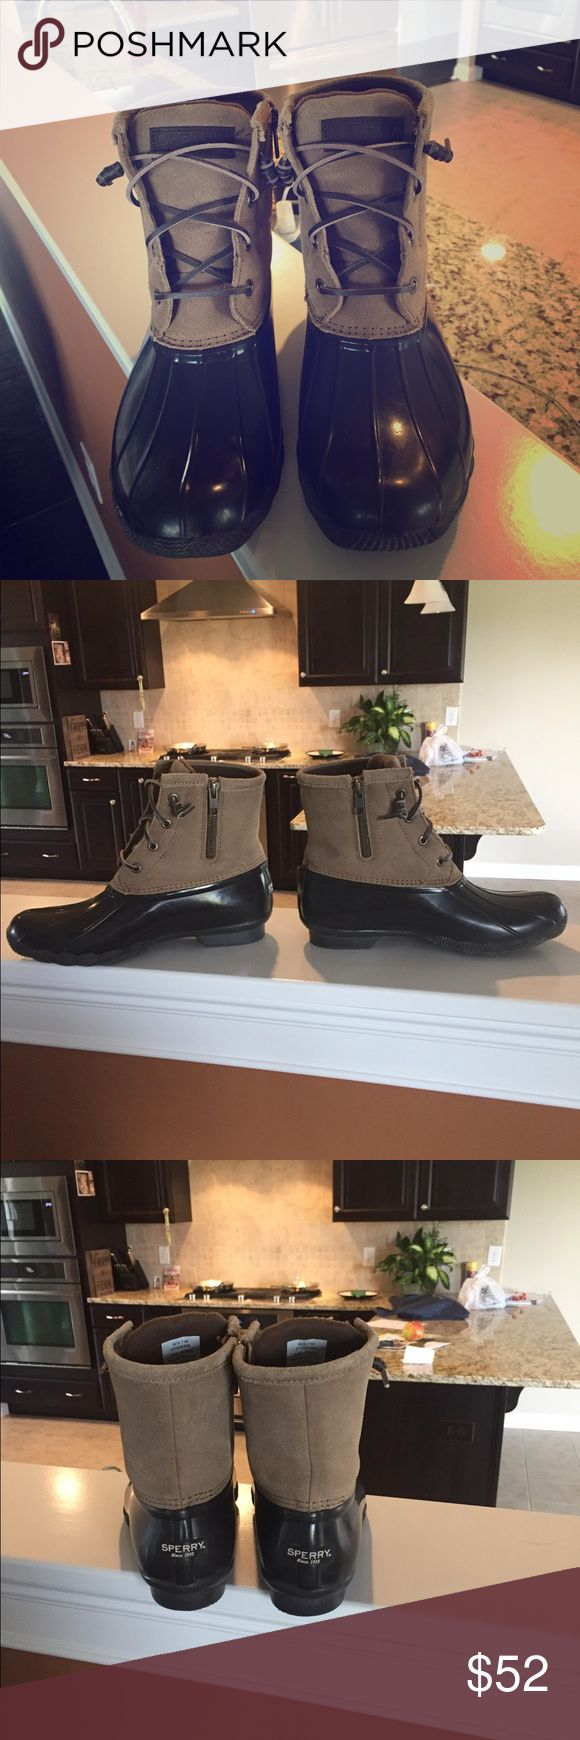 Sperry Saltwater Duck Boots Women's Great condition! Only worn twice! Size 7 Great deal...NO TRADES....PRICE FIRM! Sperry Shoes Winter & Rain Boots